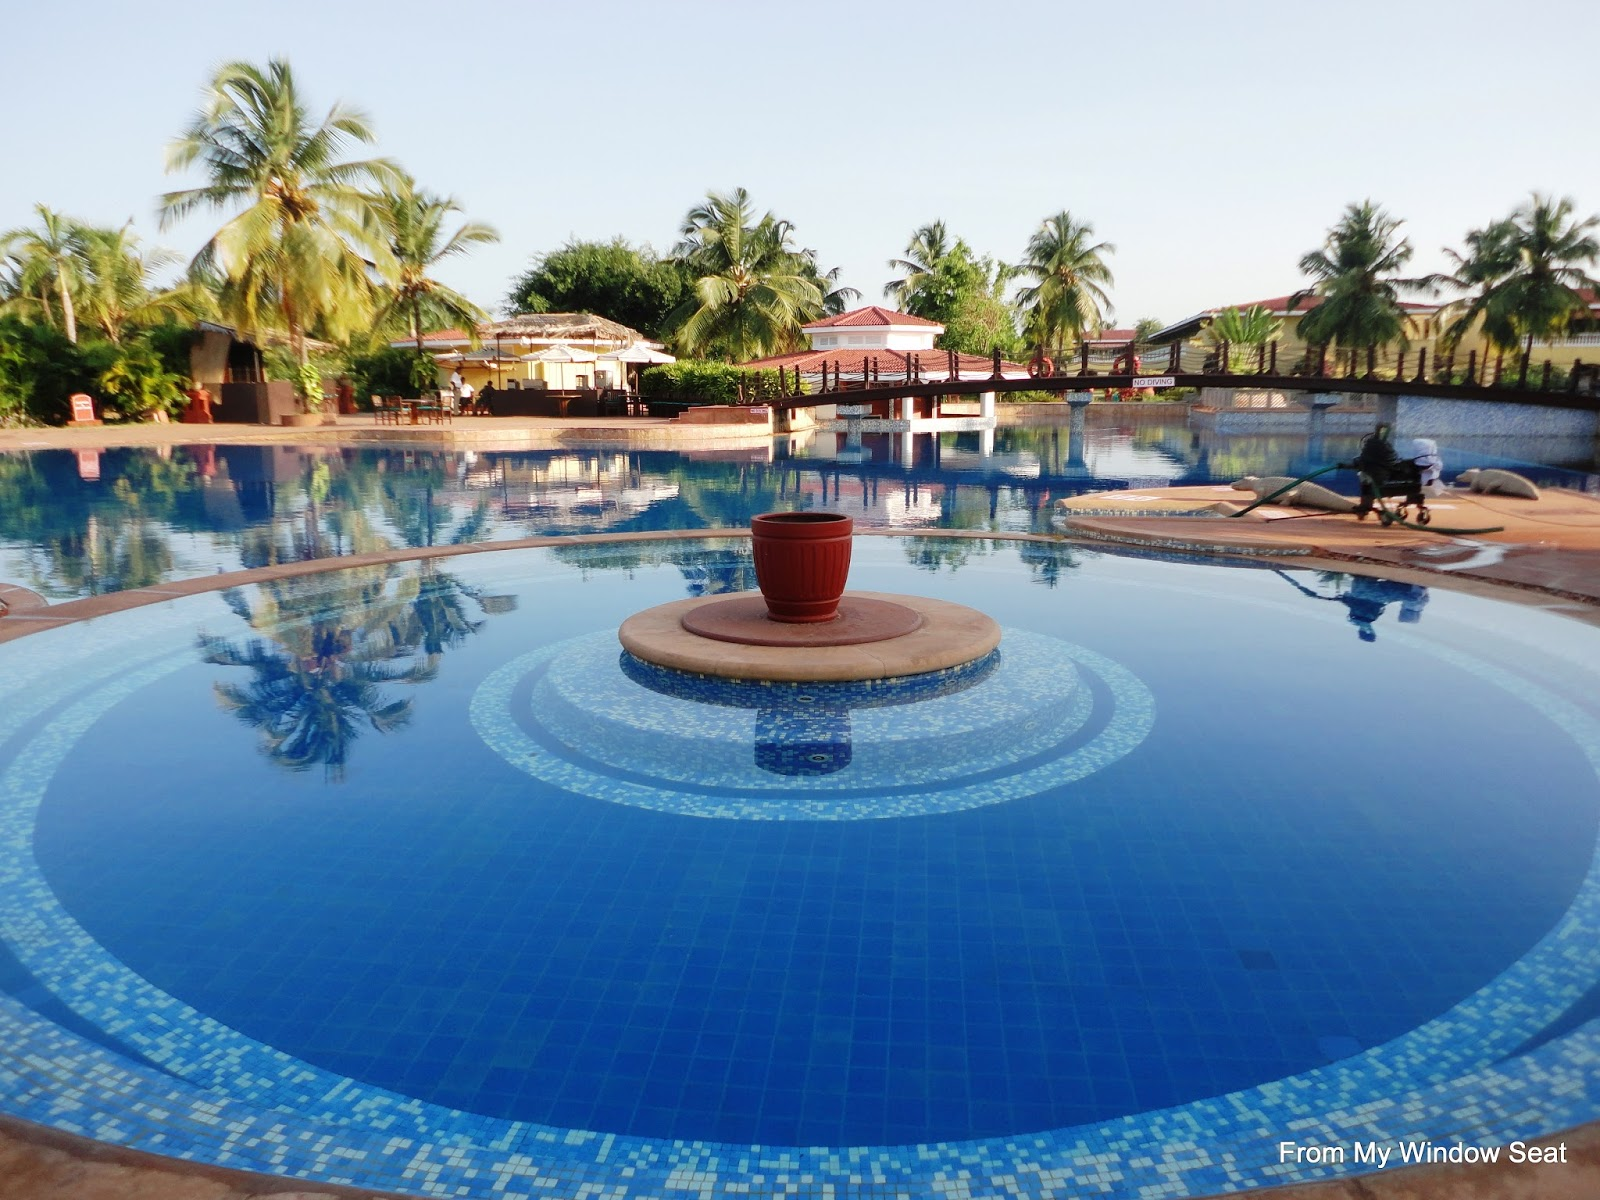 Anand Resorts Top 5 Beach Resorts In Goa From My Window Seat